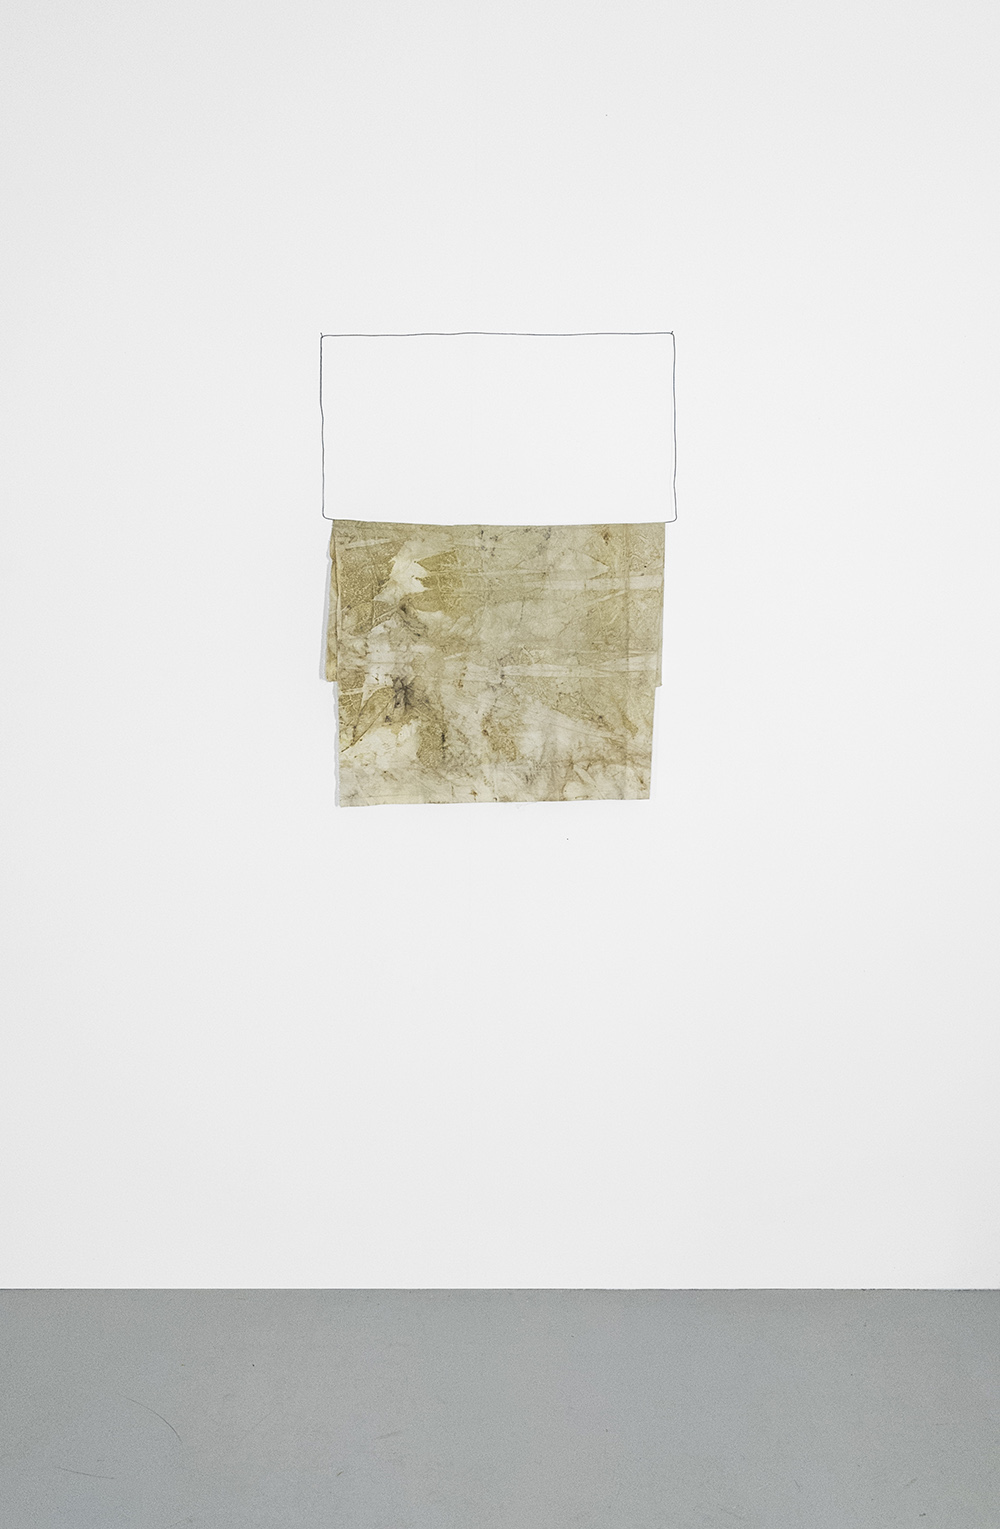 Francesco Fossati, Pacciame [Mulch], 2020, ecoprint on organic cotton and wire, 64 x 102 cm